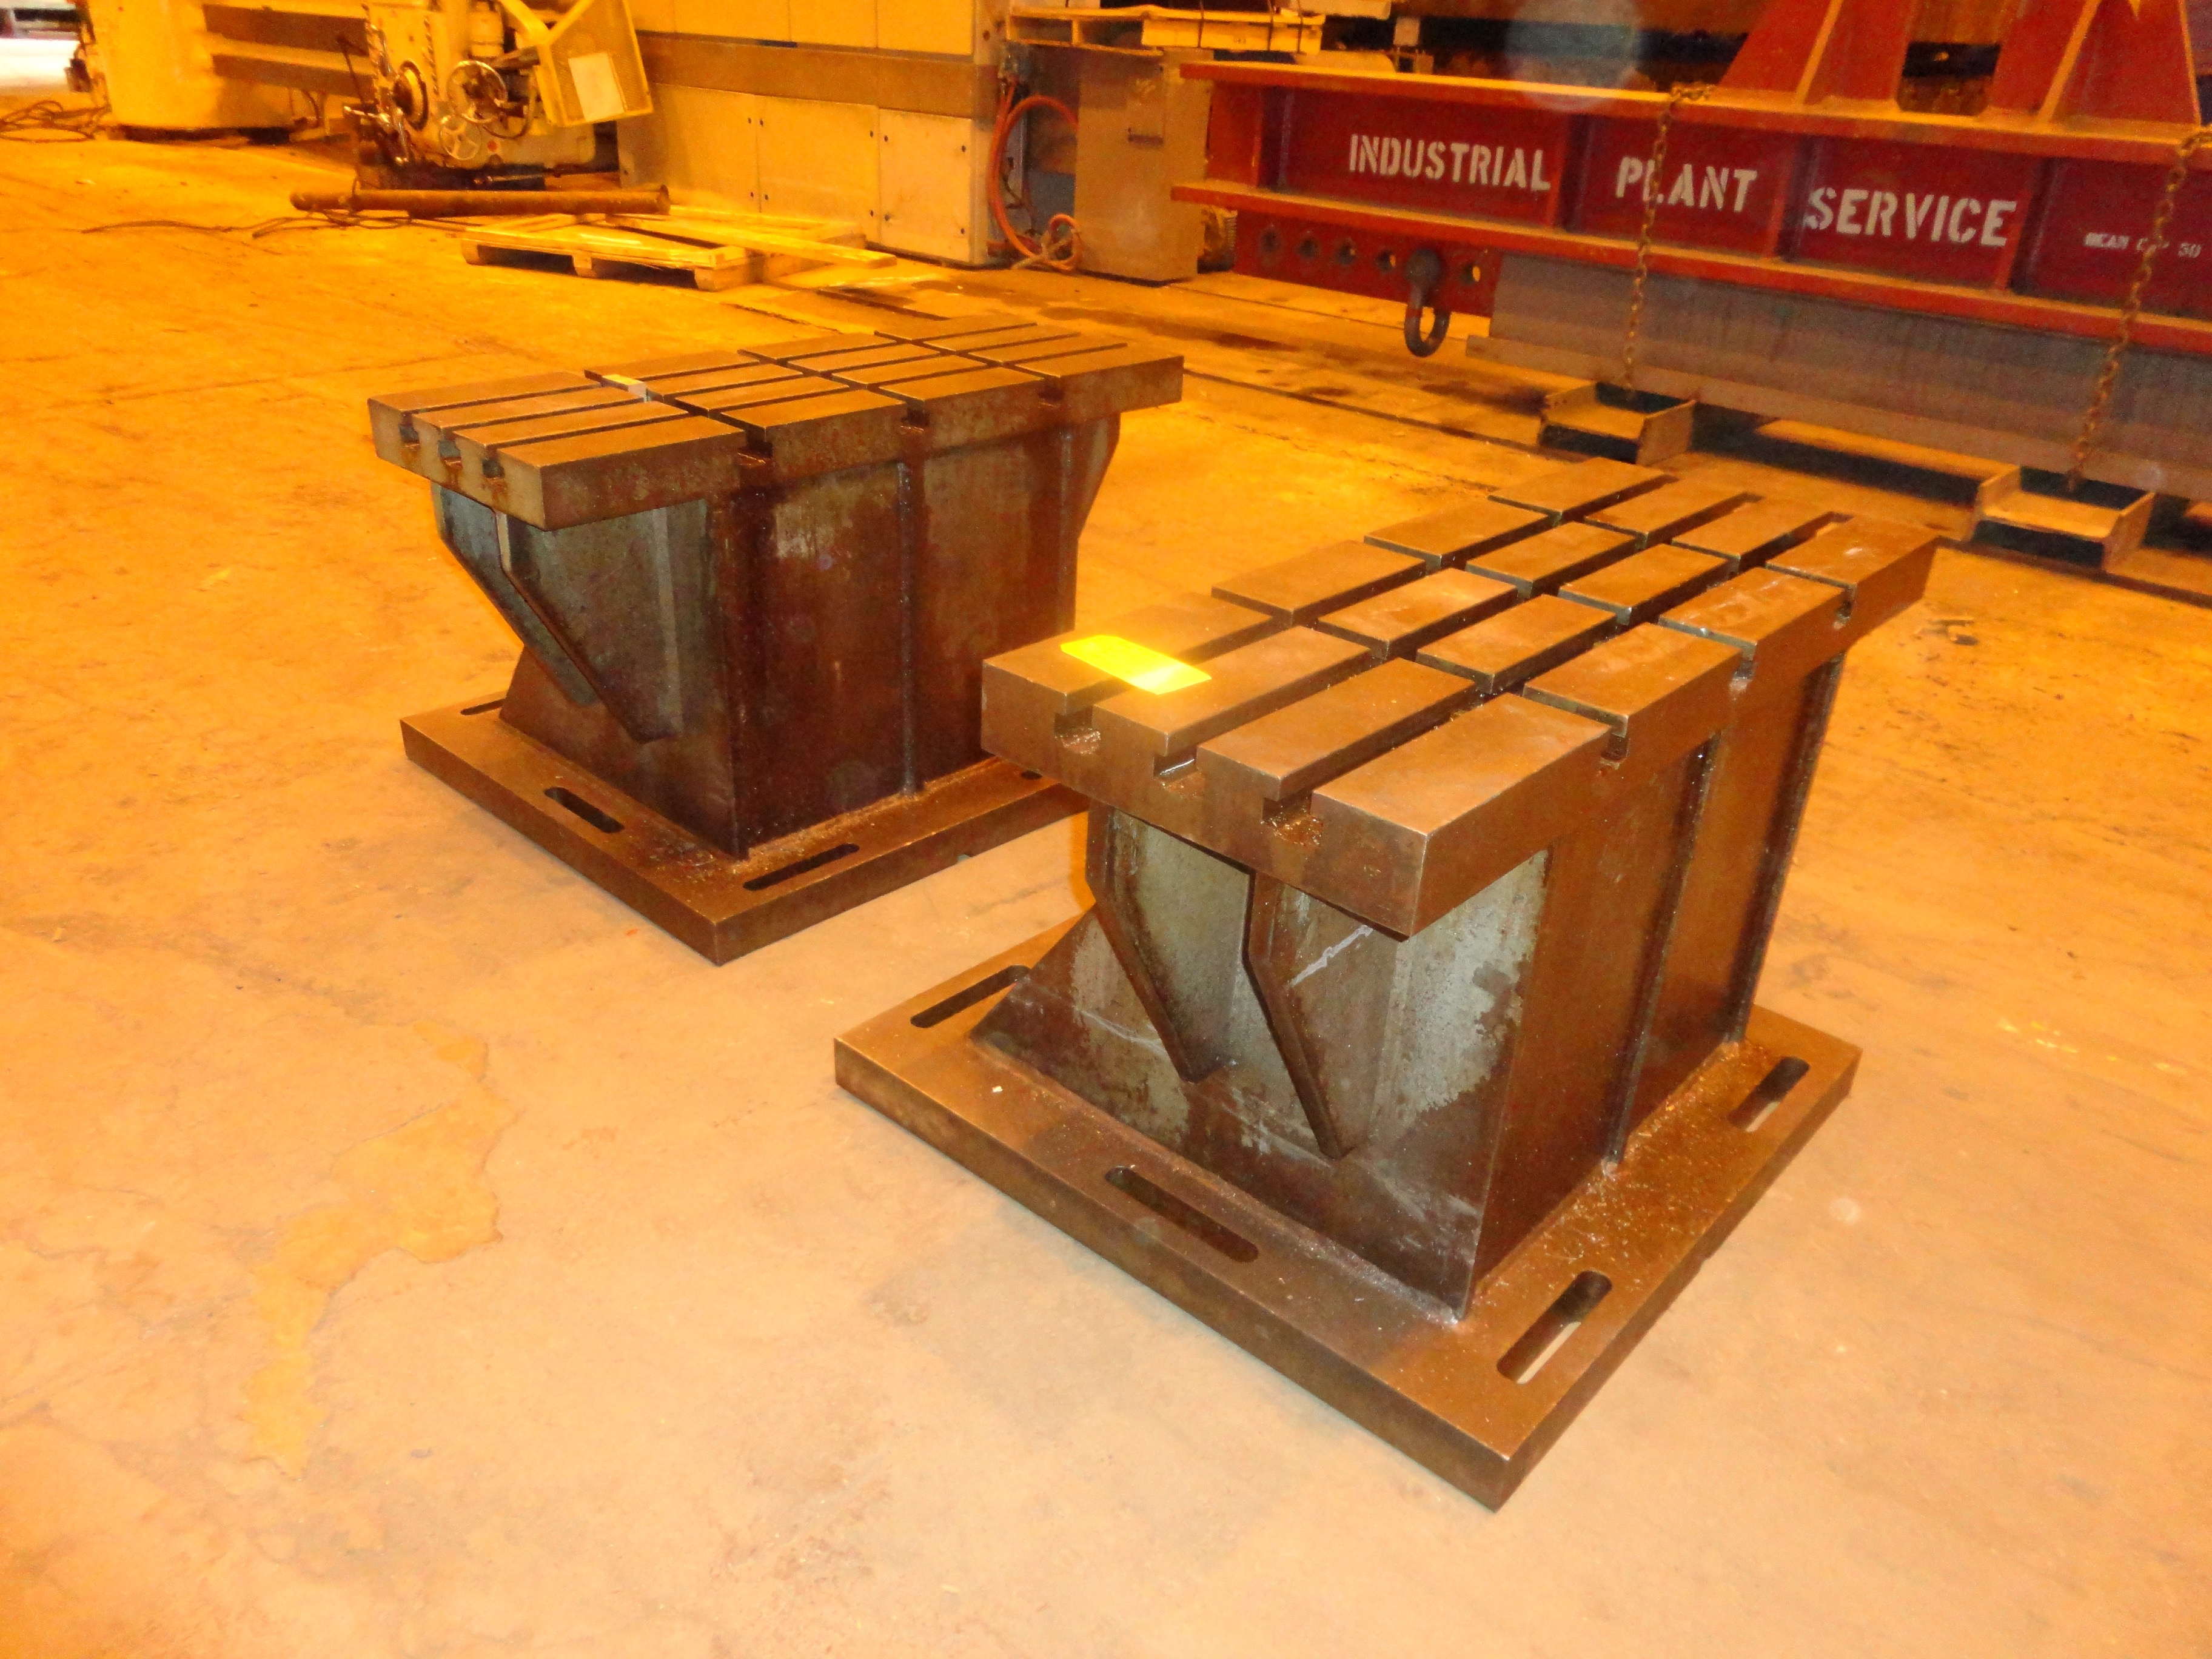 """Set of 2 T-Slotted Riser Blocks Knee Hold Down Plates 42""""L x 16"""" W x 25""""H - Image 12 of 13"""